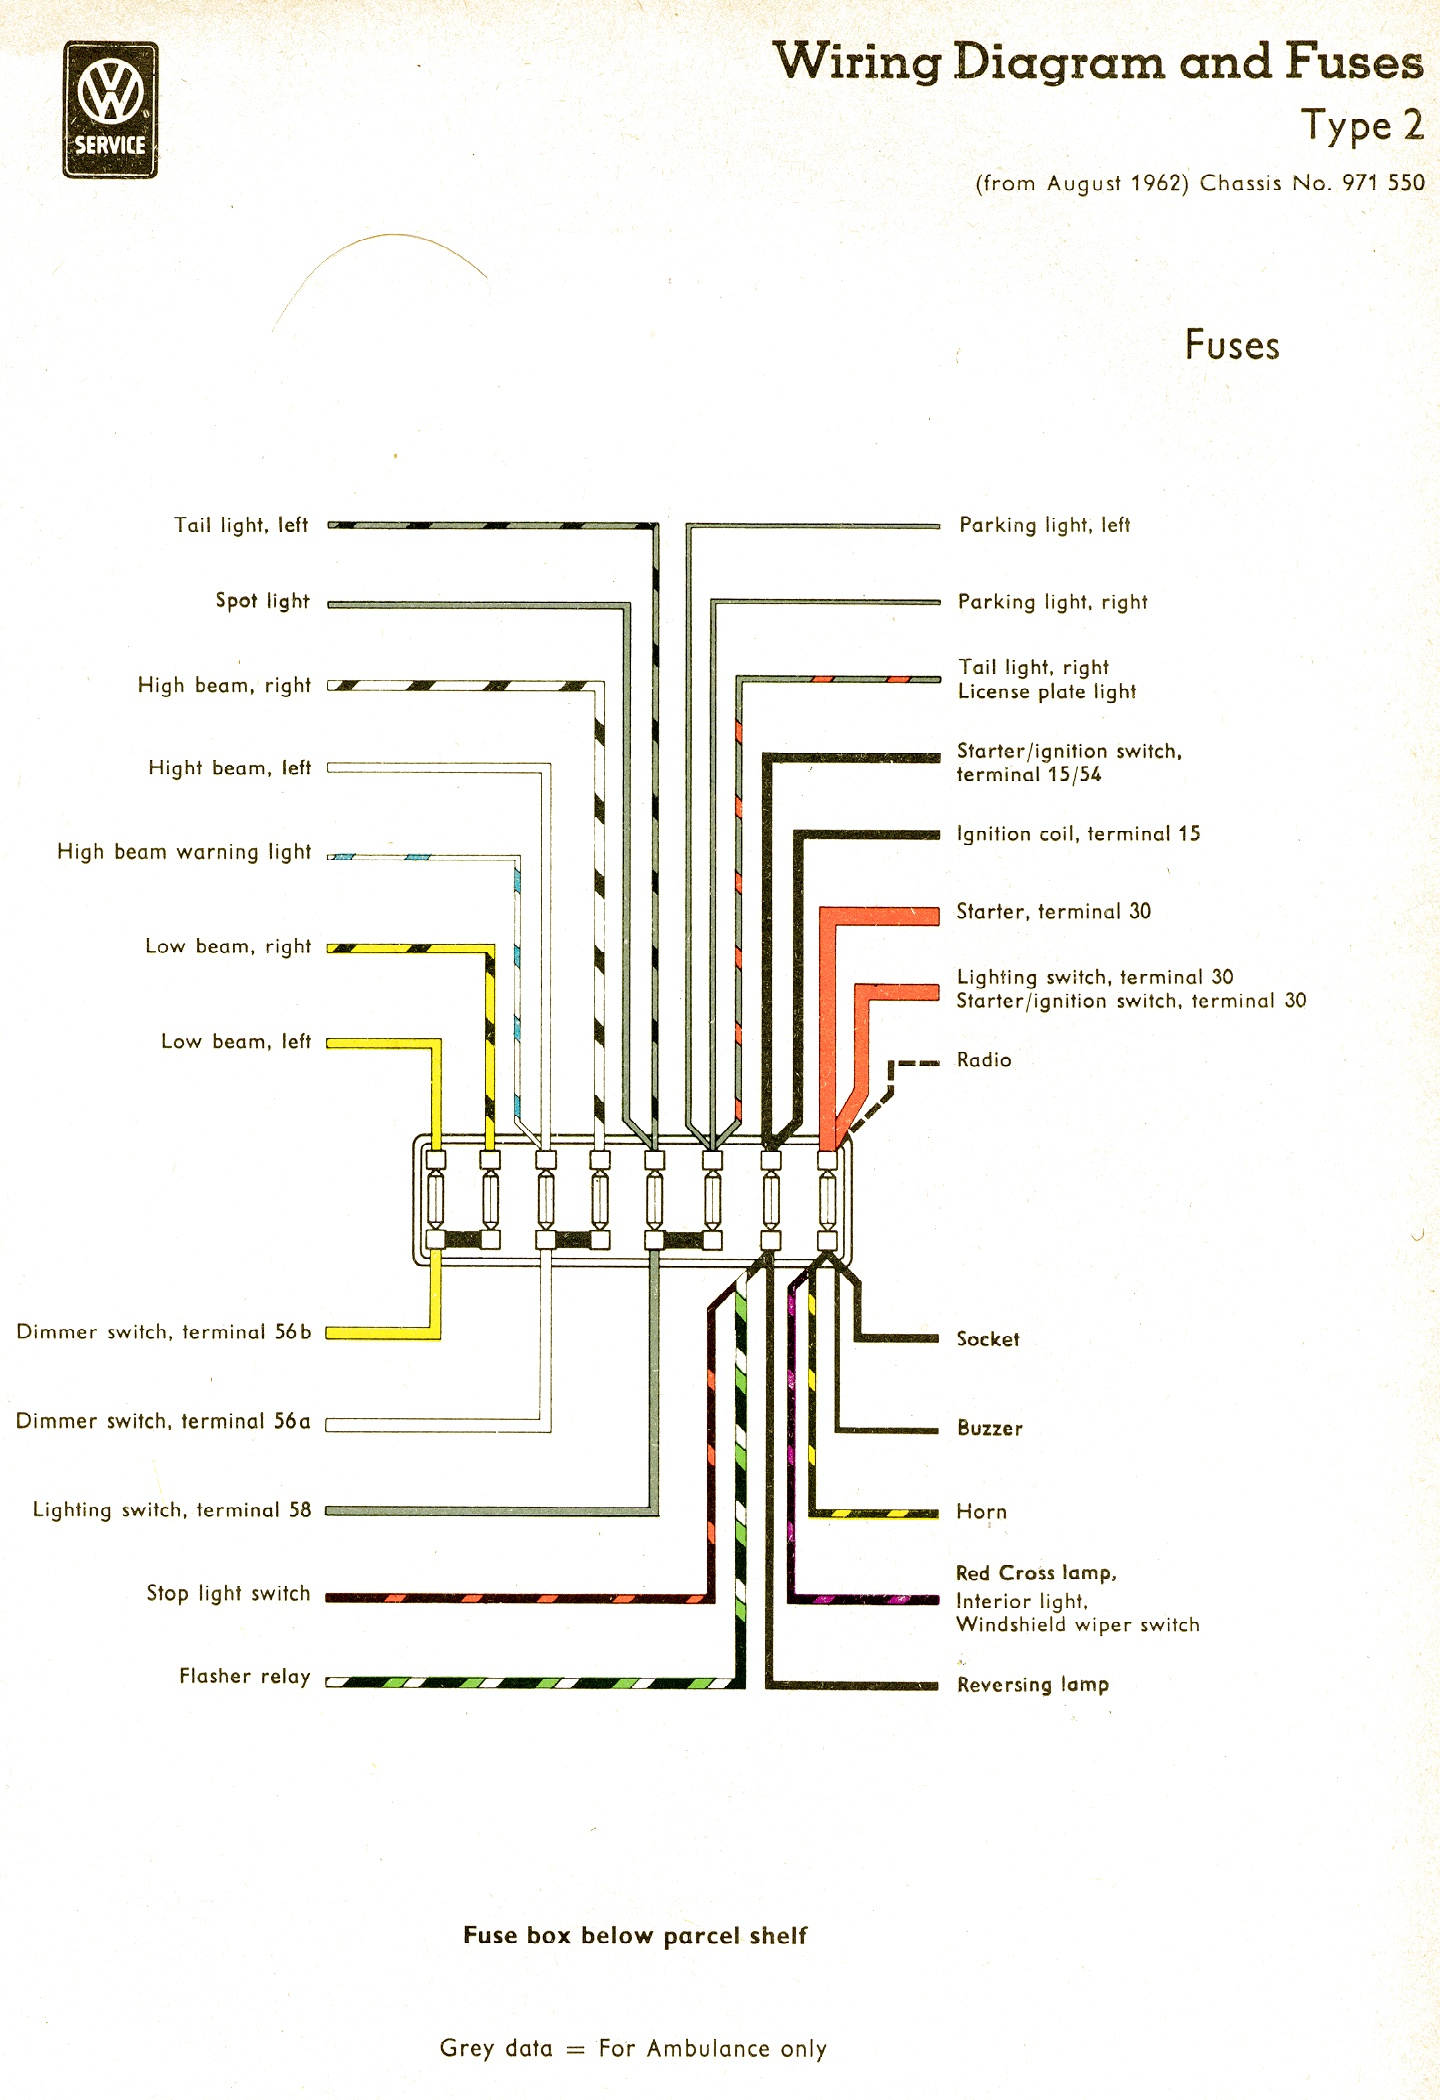 bus 62 fuse vw wiring diagrams 73 vw beetle wiring diagram at nearapp.co